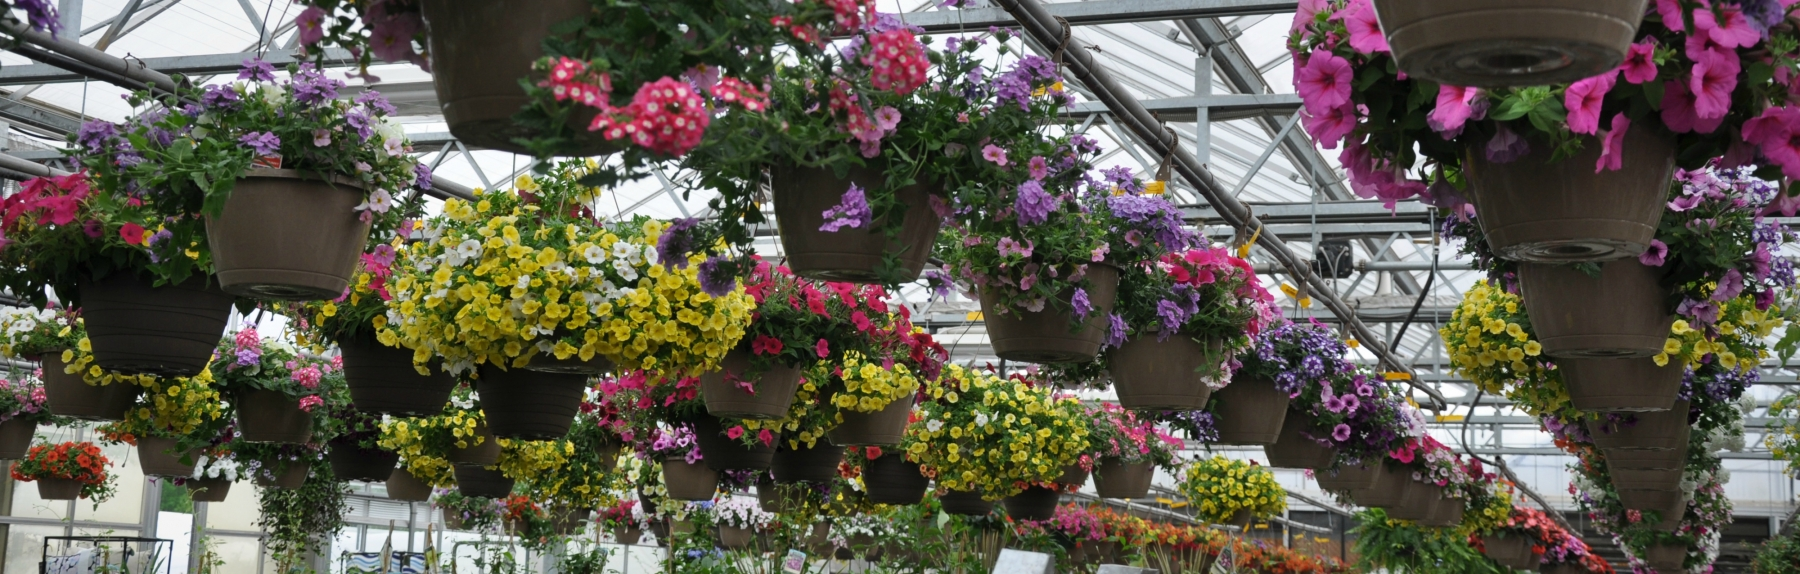 Beautiful Blooming Baskets